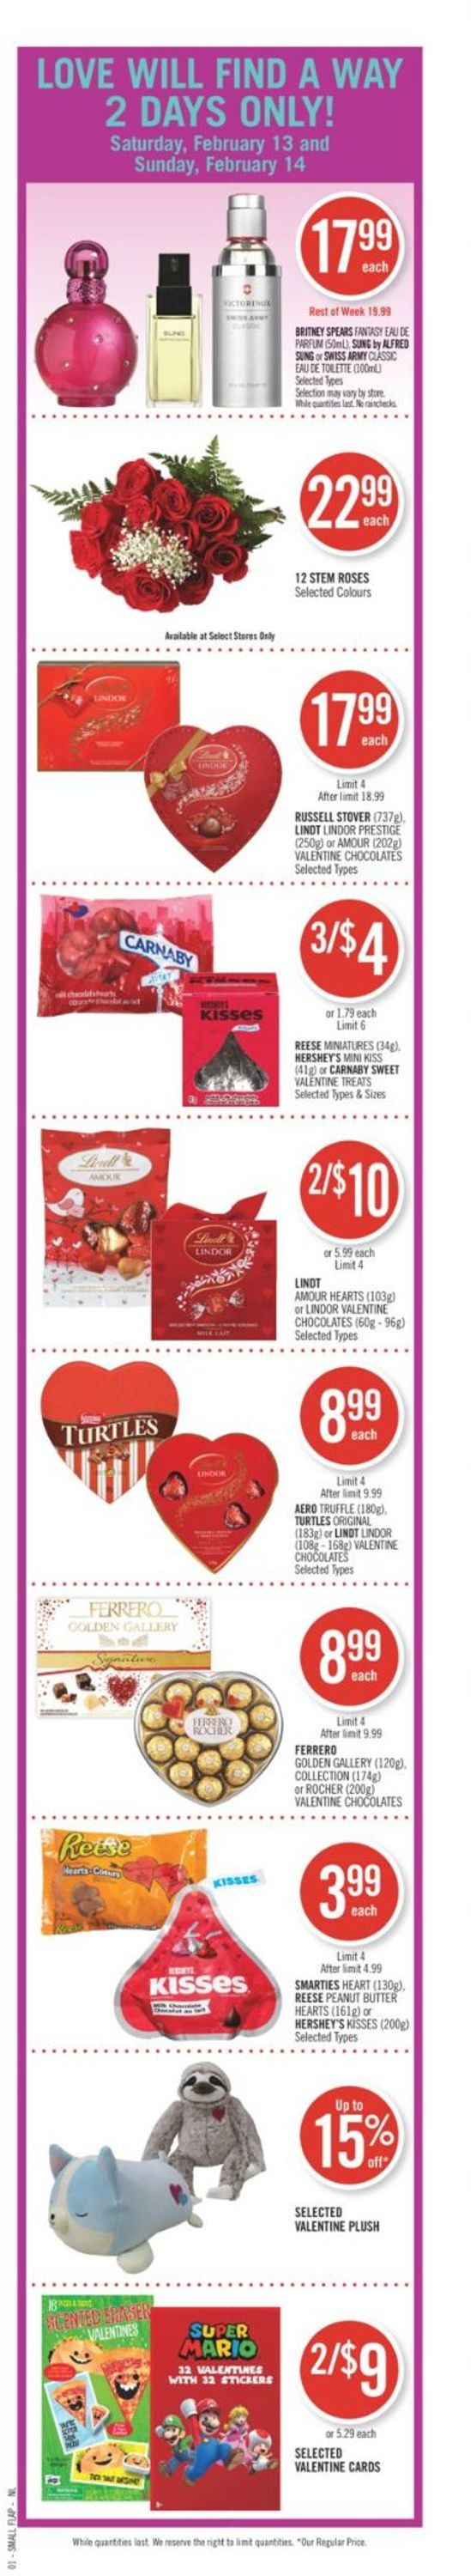 Shoppers - Valentine's Day Flyer - 02/13-02/18/2021